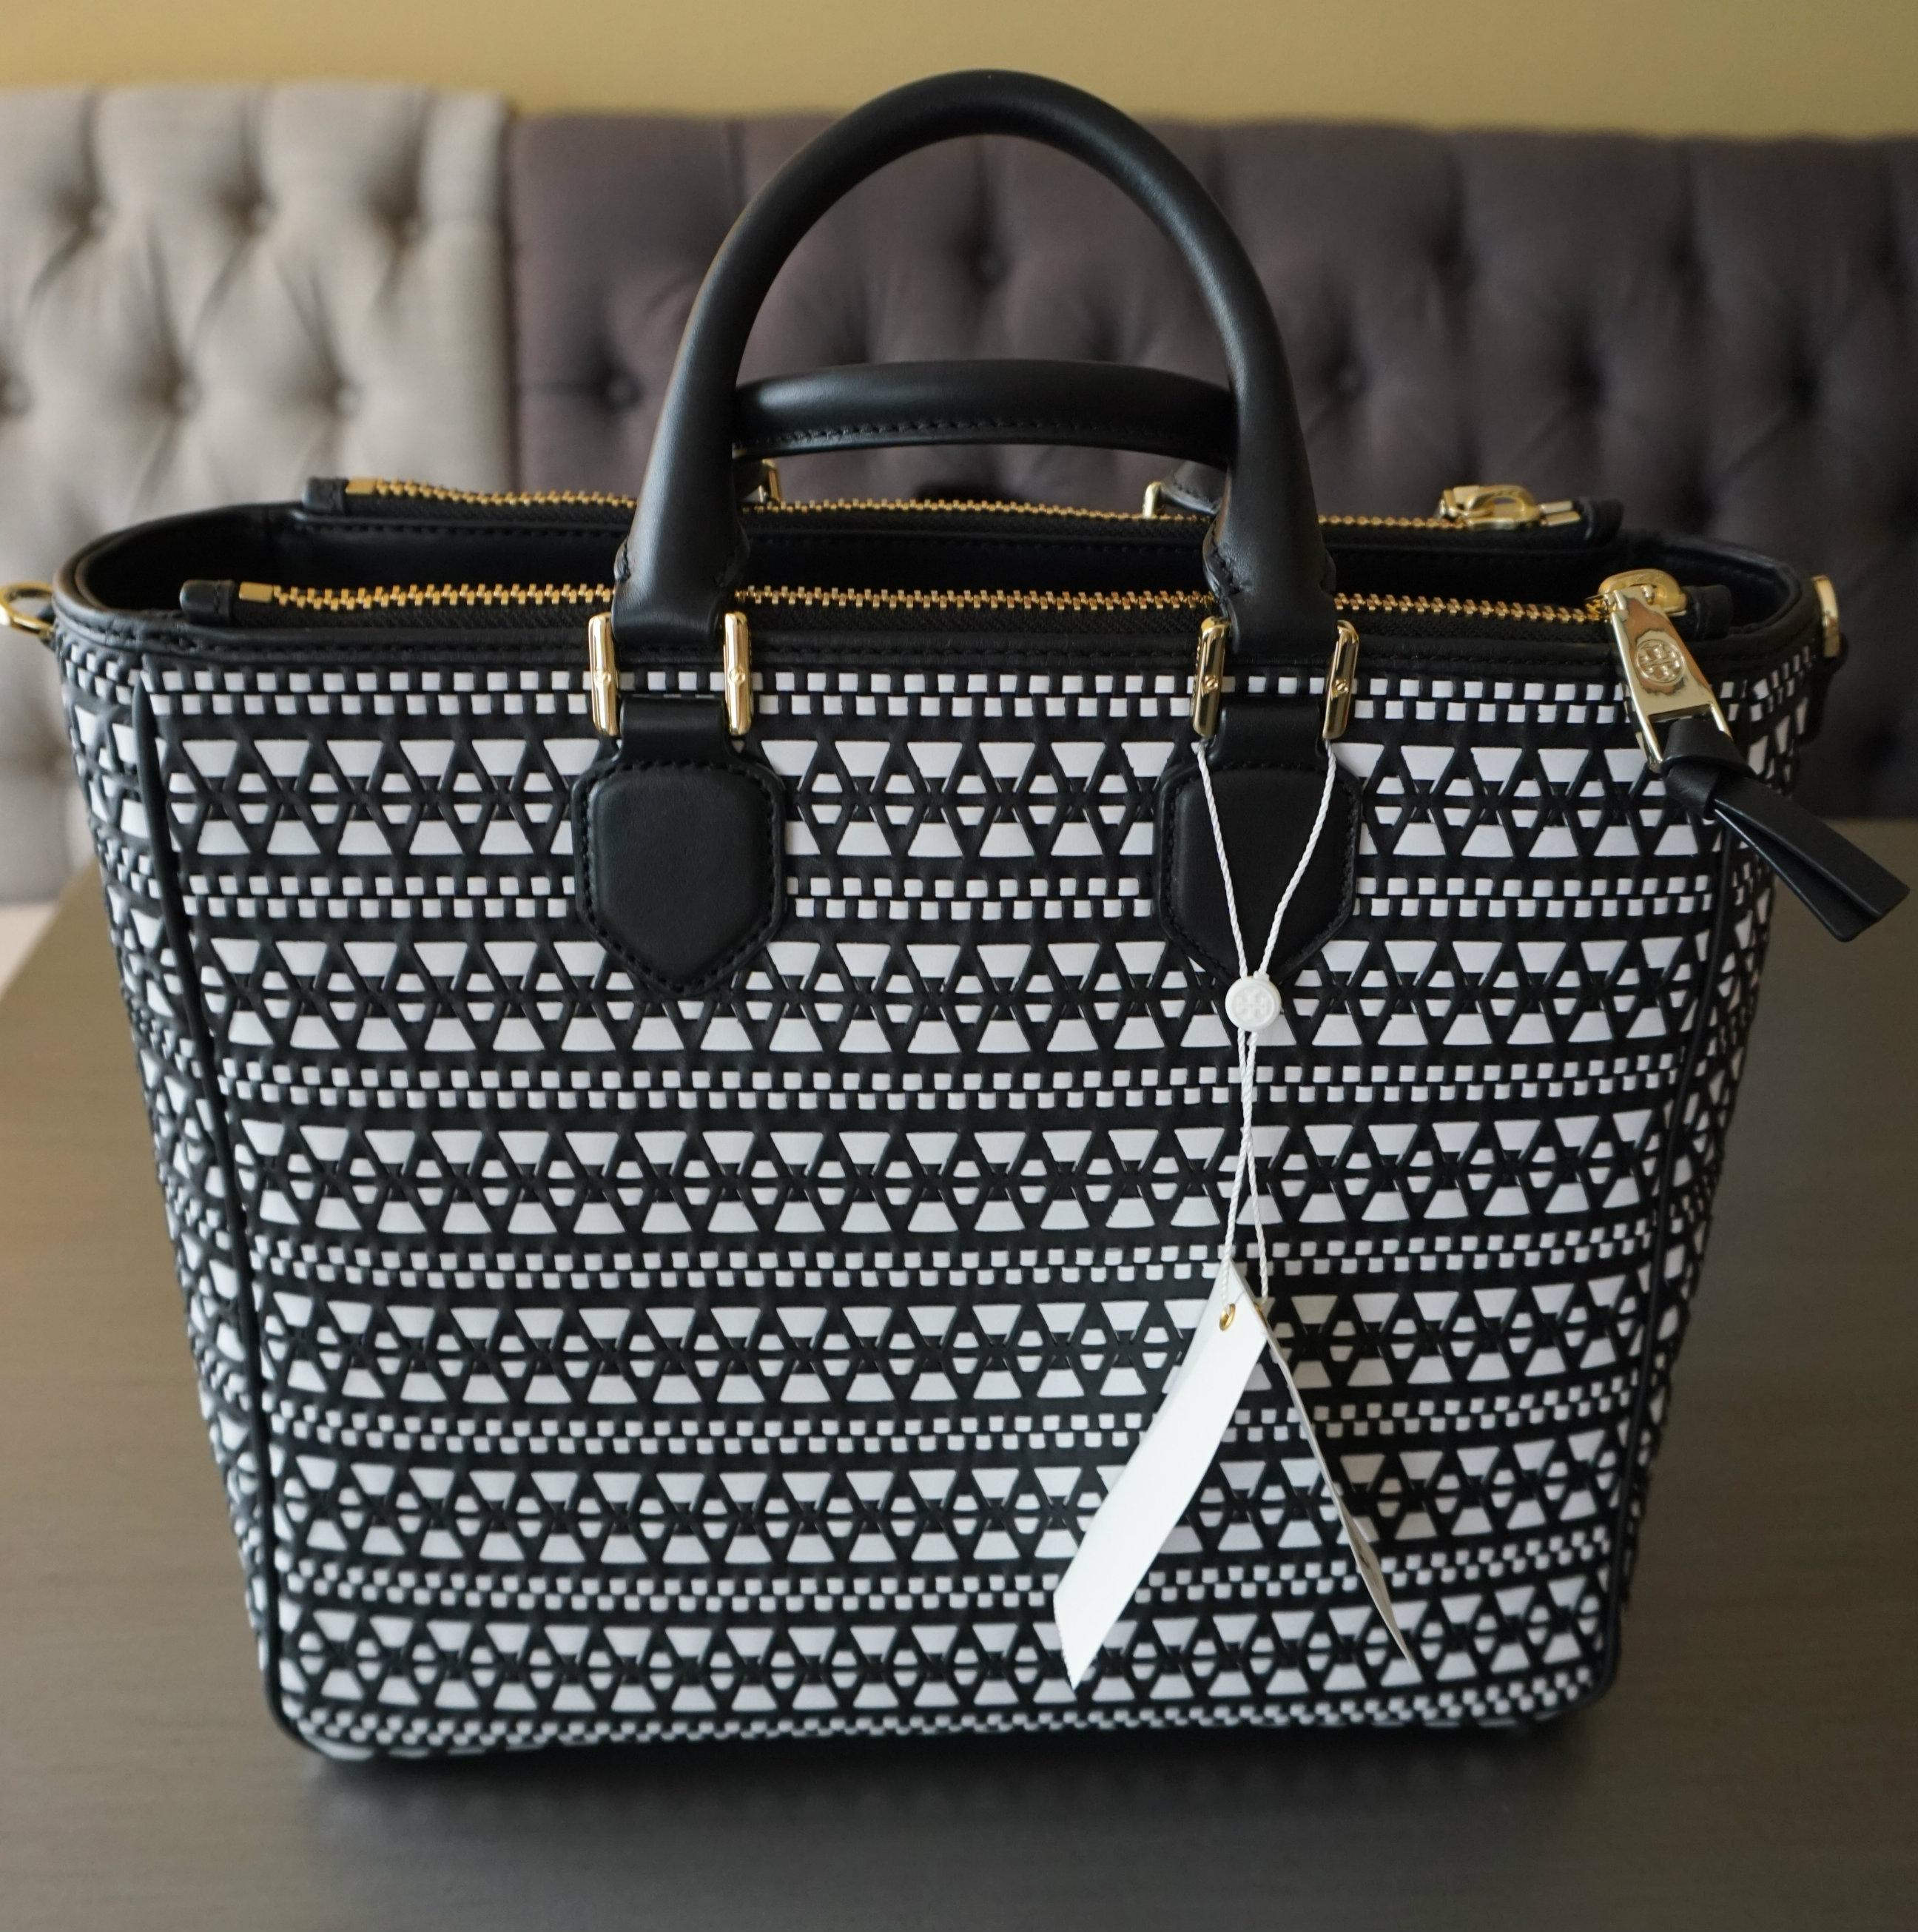 82ad9fbe6ce ... norway tory burch robinson woven square black white style 888736132611  black and white leather tote tradesy